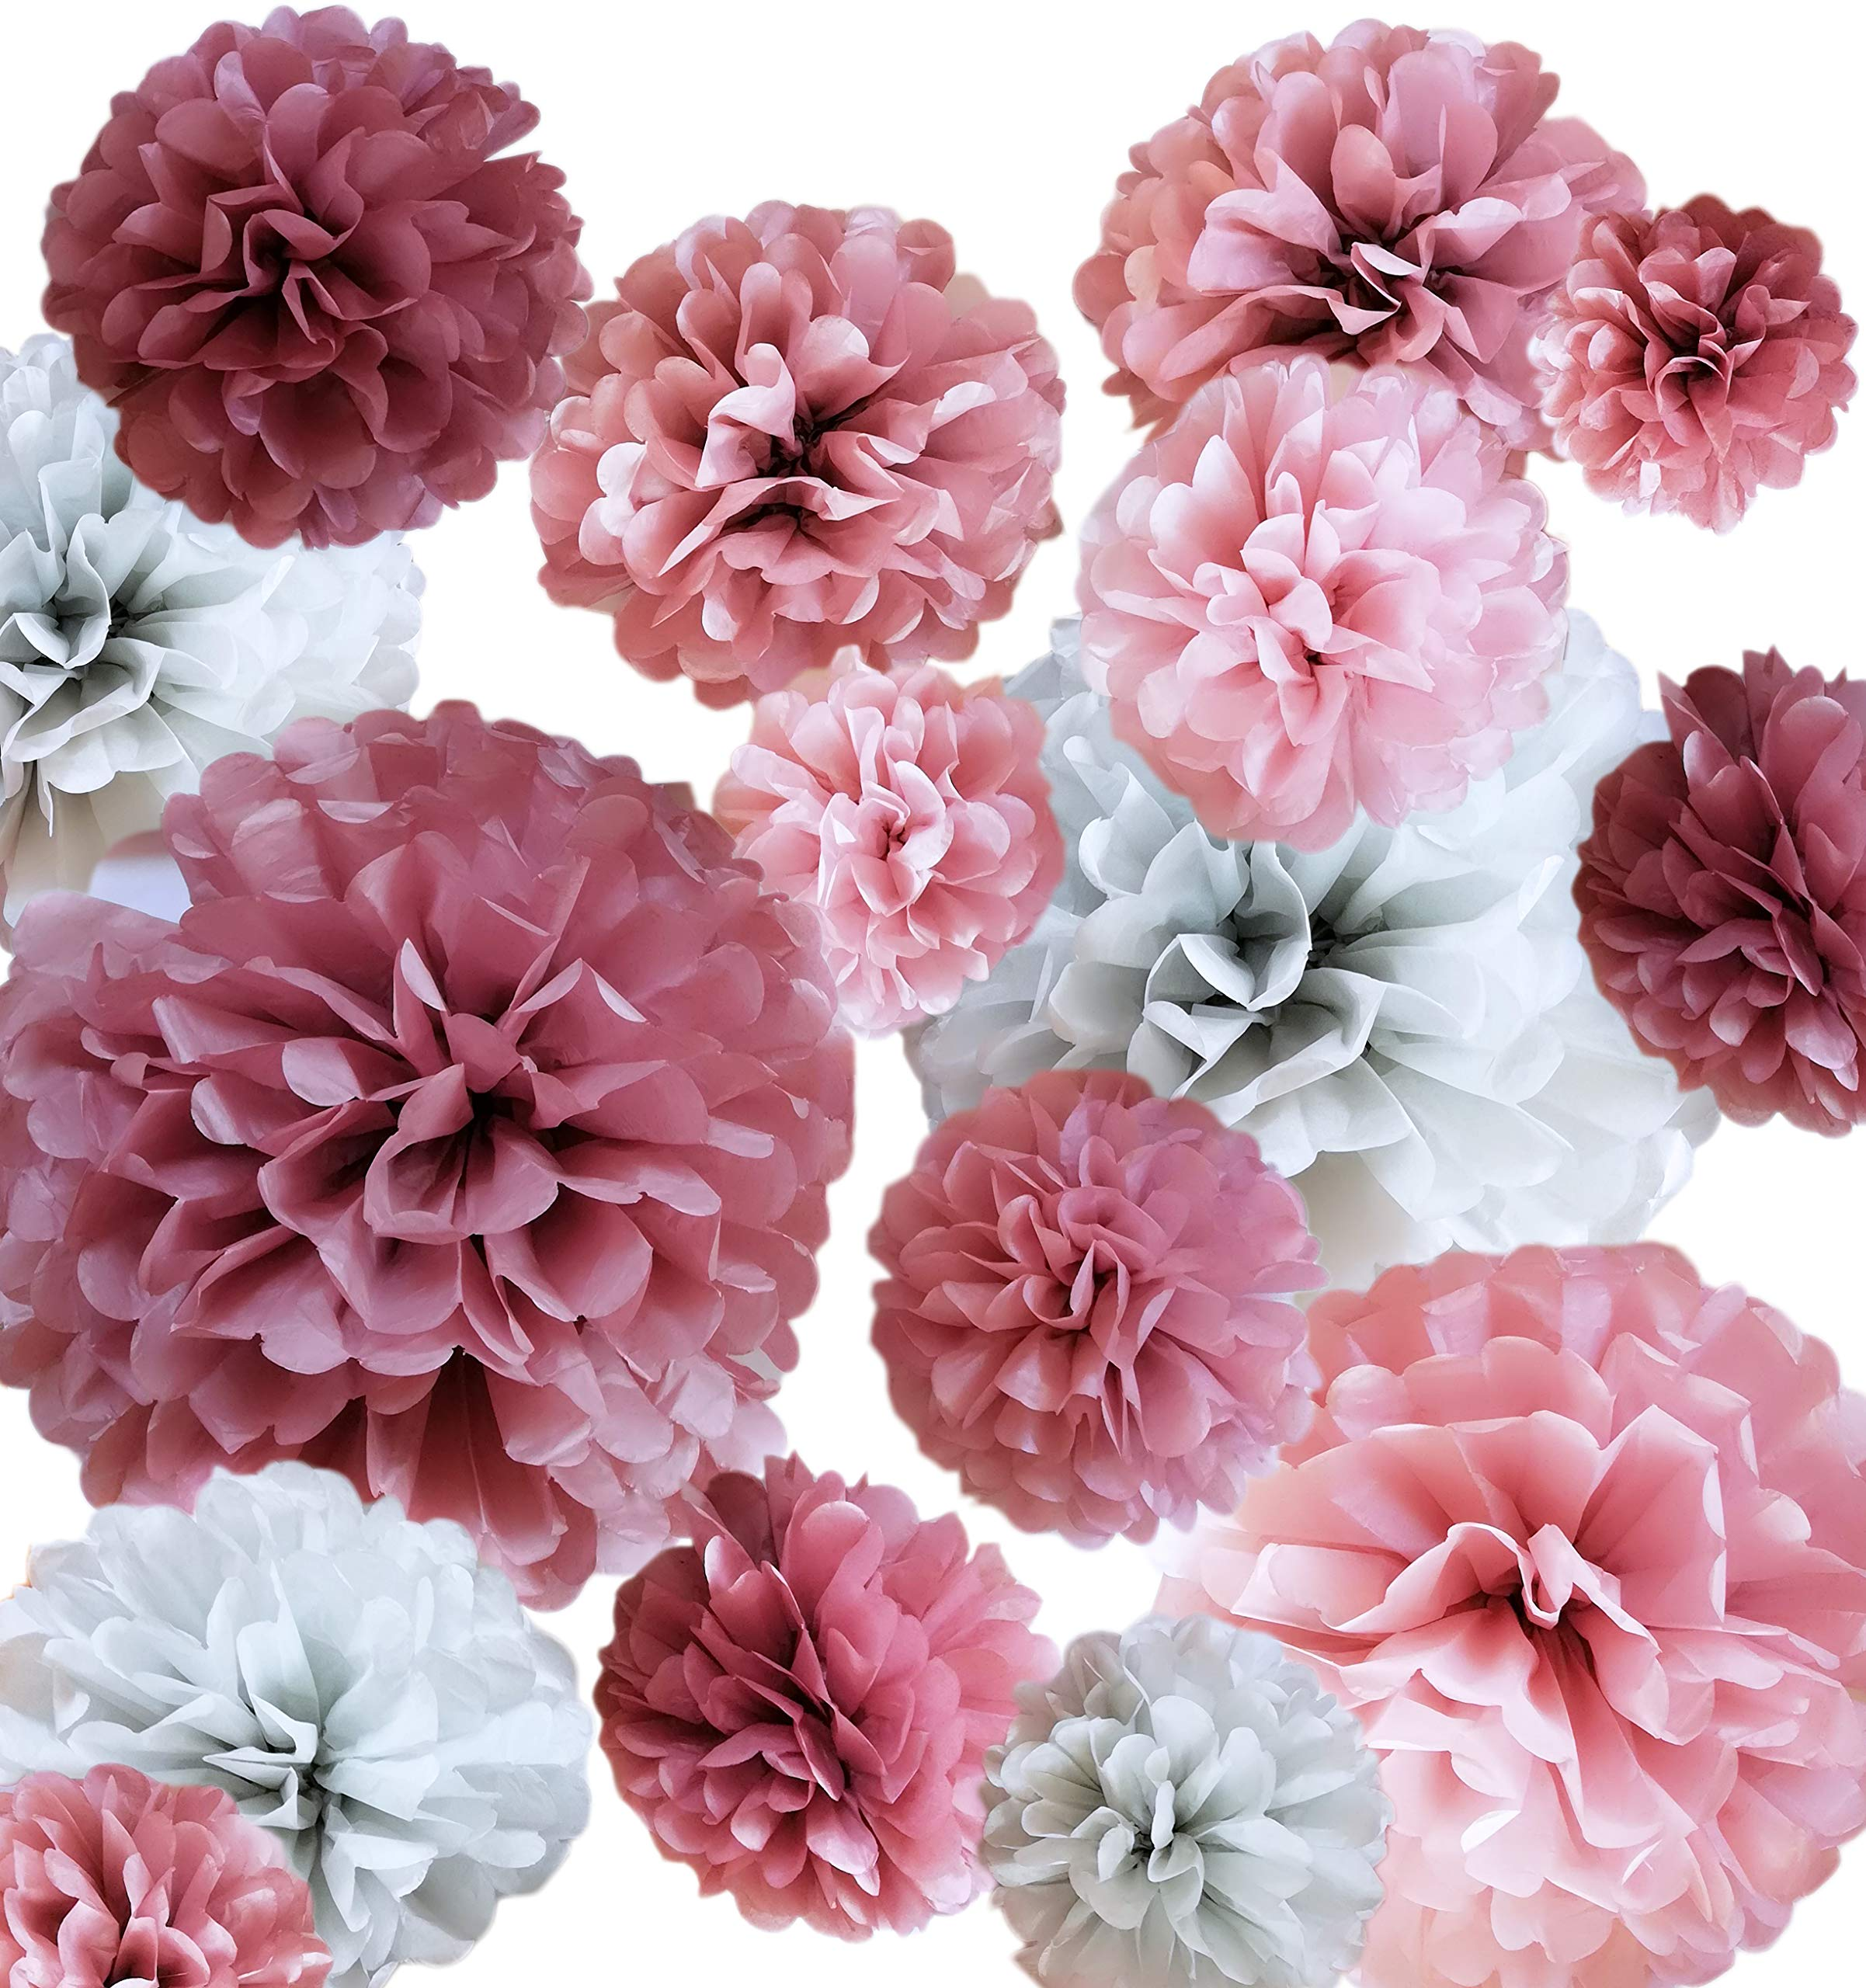 VINANT 20 PCS Tissue Paper Pom Poms - Paper Flower - Party Decoration for Birthday Party - Baby Shower - Bridal Shower - Wedding - Bachelorette - Dusty Rose, Mauve, Blush Pink, Grey - 14'', 10'', 8'', 6''